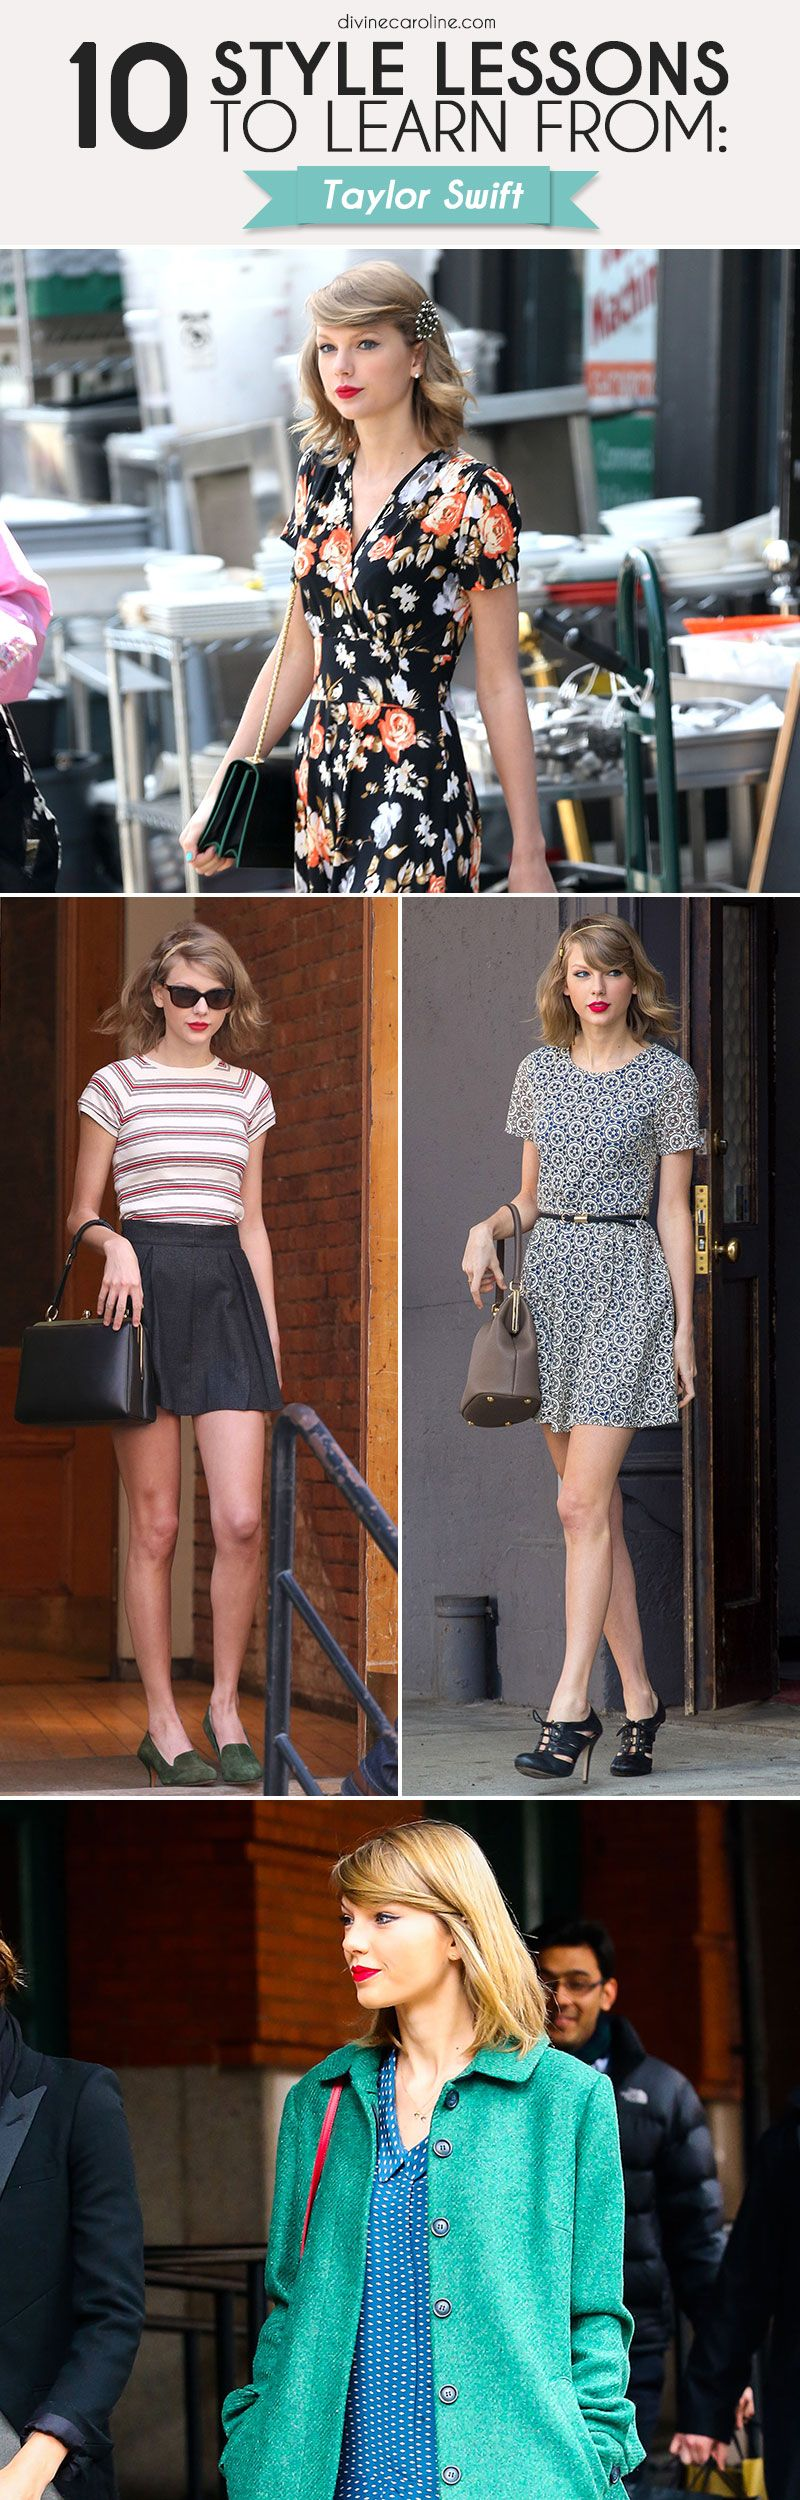 Taylor Swift Style On Pinterest Taylor Swift Fashion Zooey Deschanel And Taylor Swift Outfits